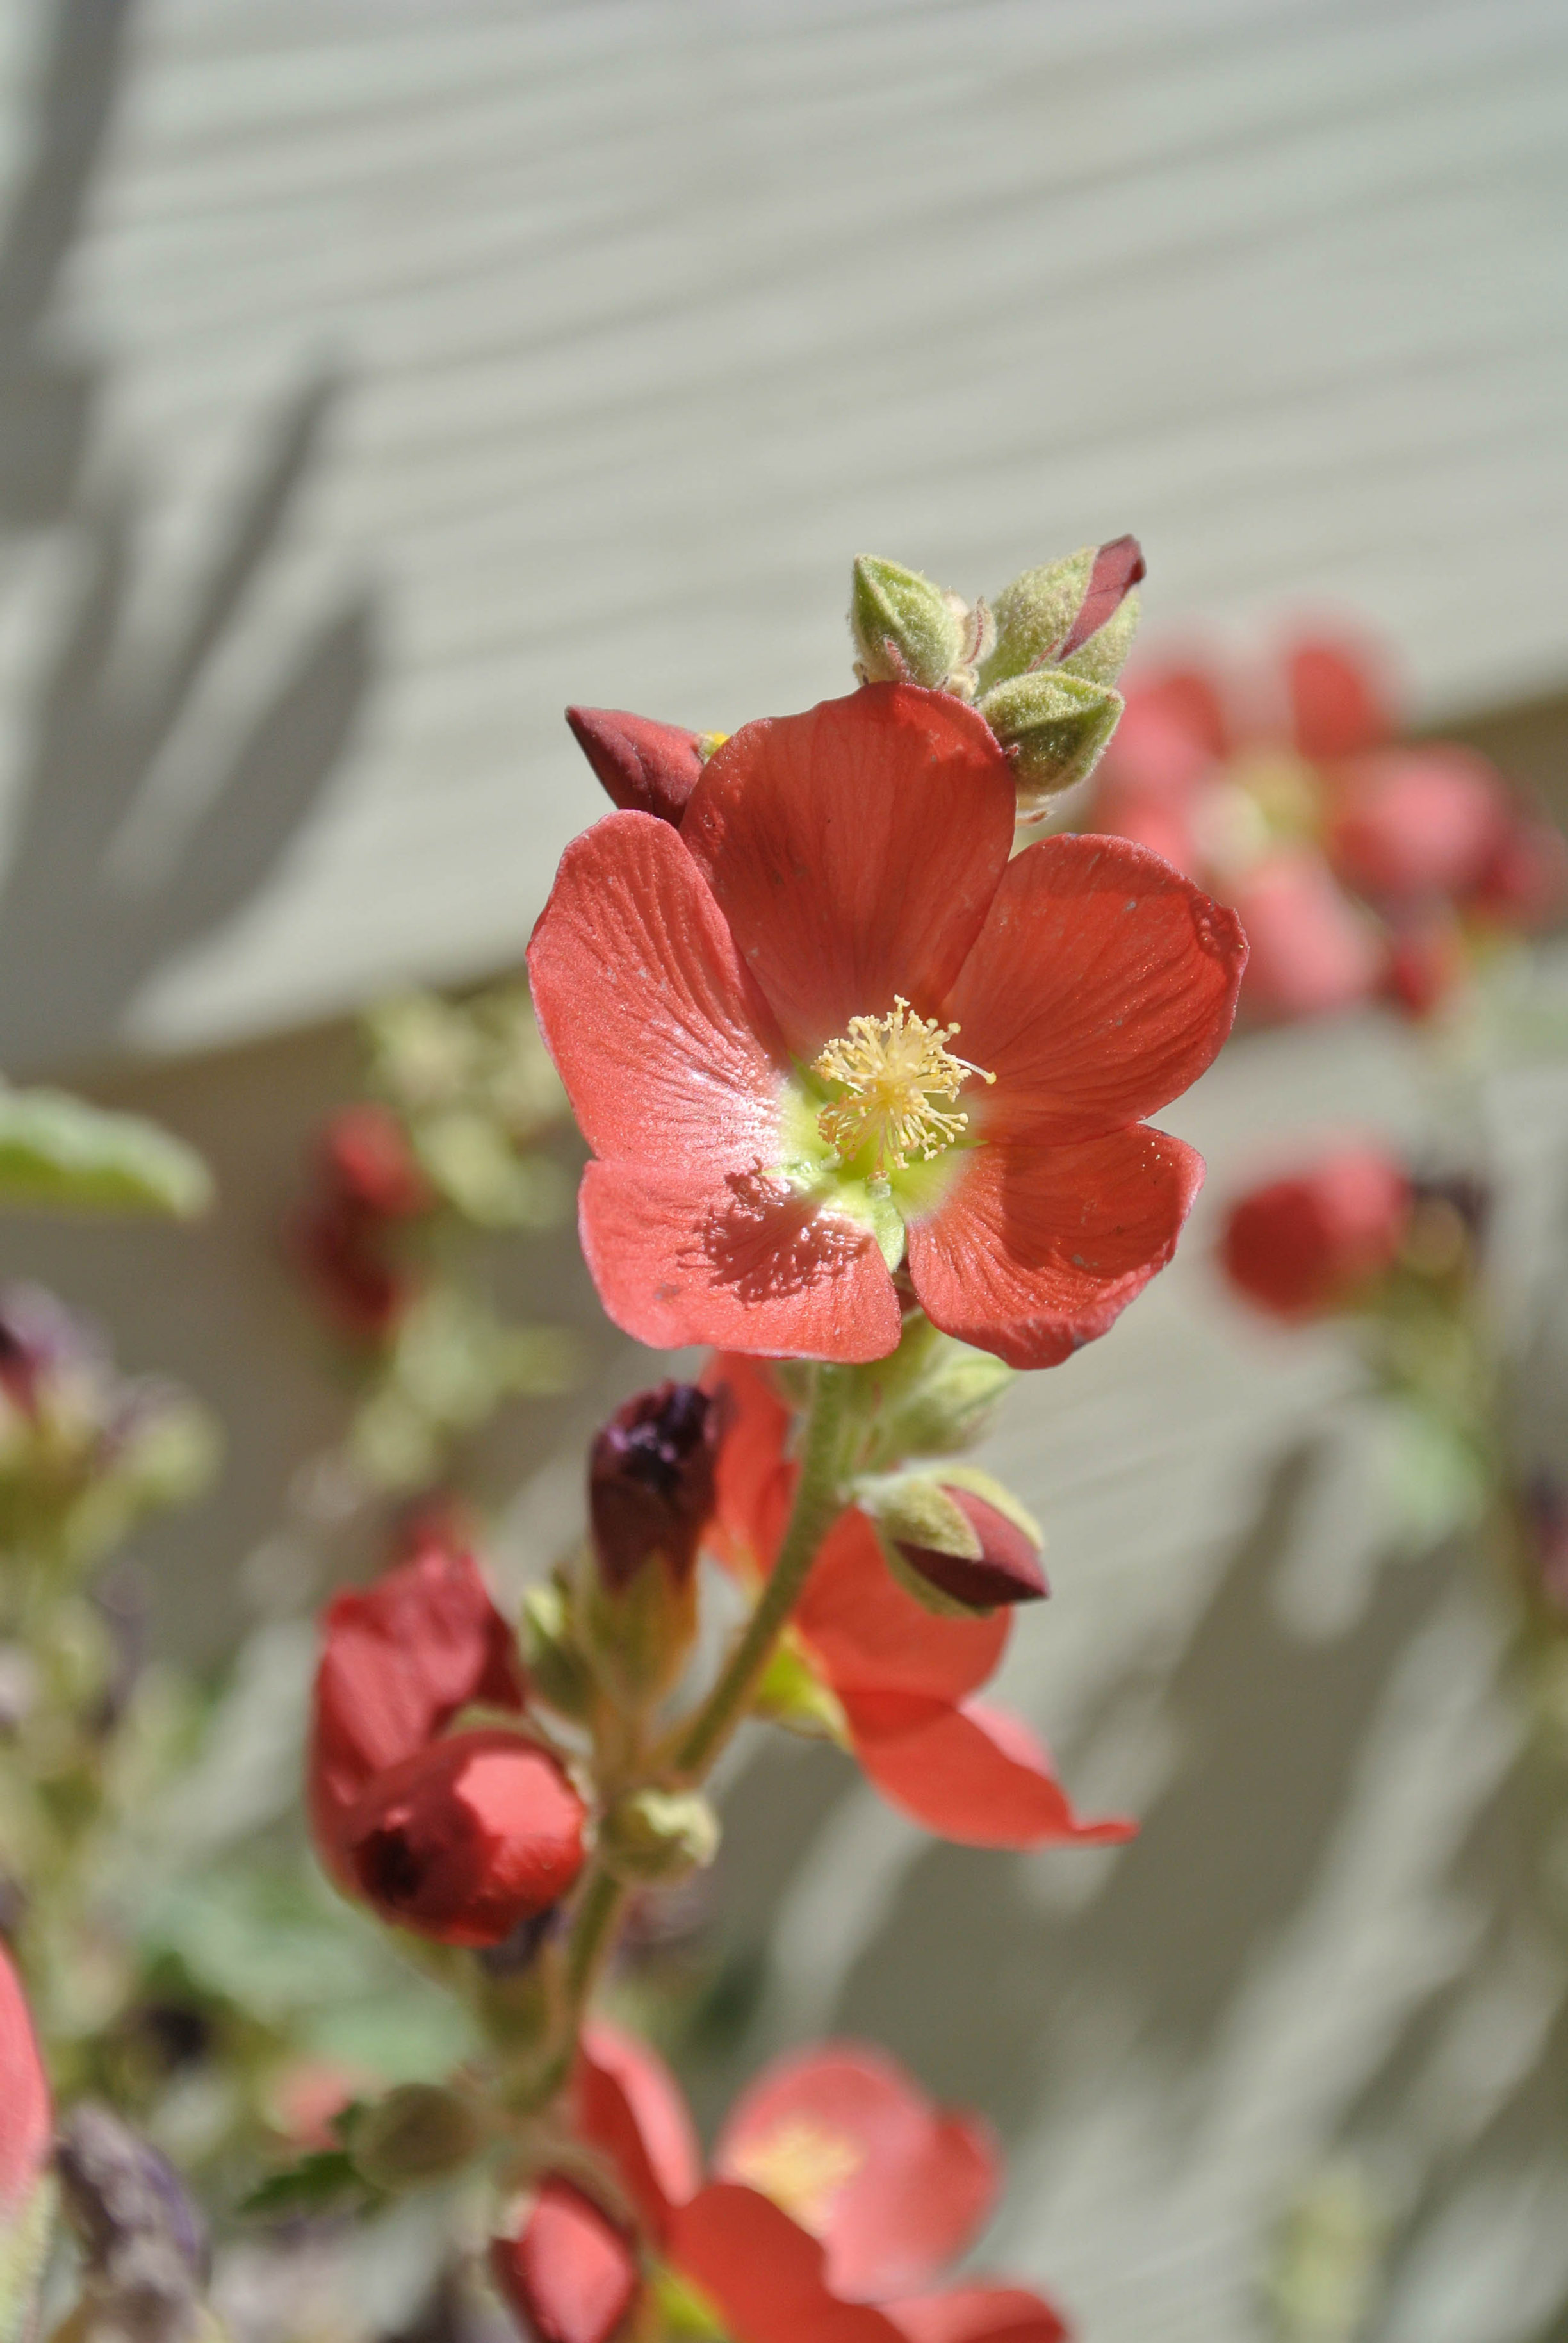 Using native plants can save water and protect bees